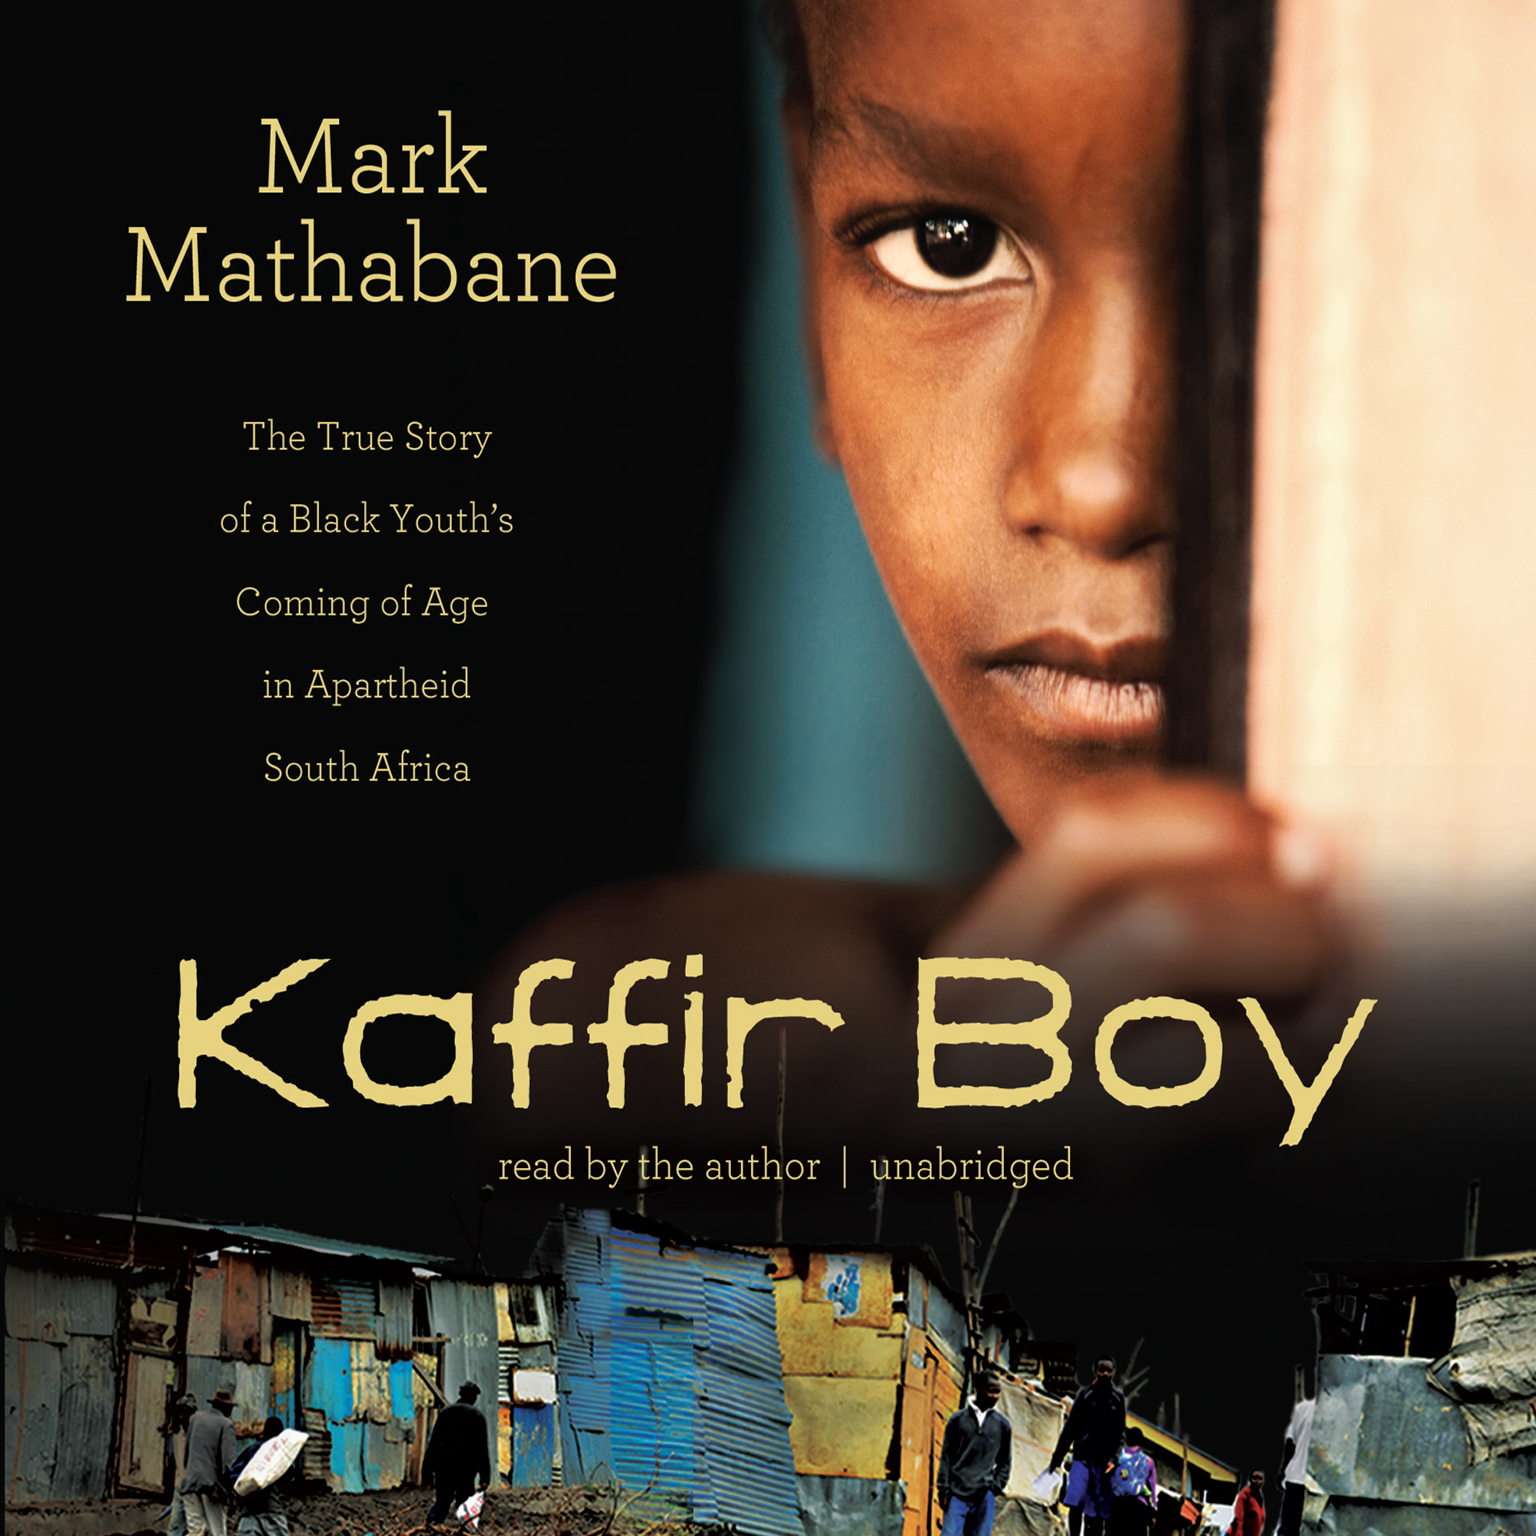 kaffir boy Kaffir boy has 13,487 ratings and 681 reviews liz said: wow-this is an eye opening book mark mathabane writes of his life as a black boy in south afric.